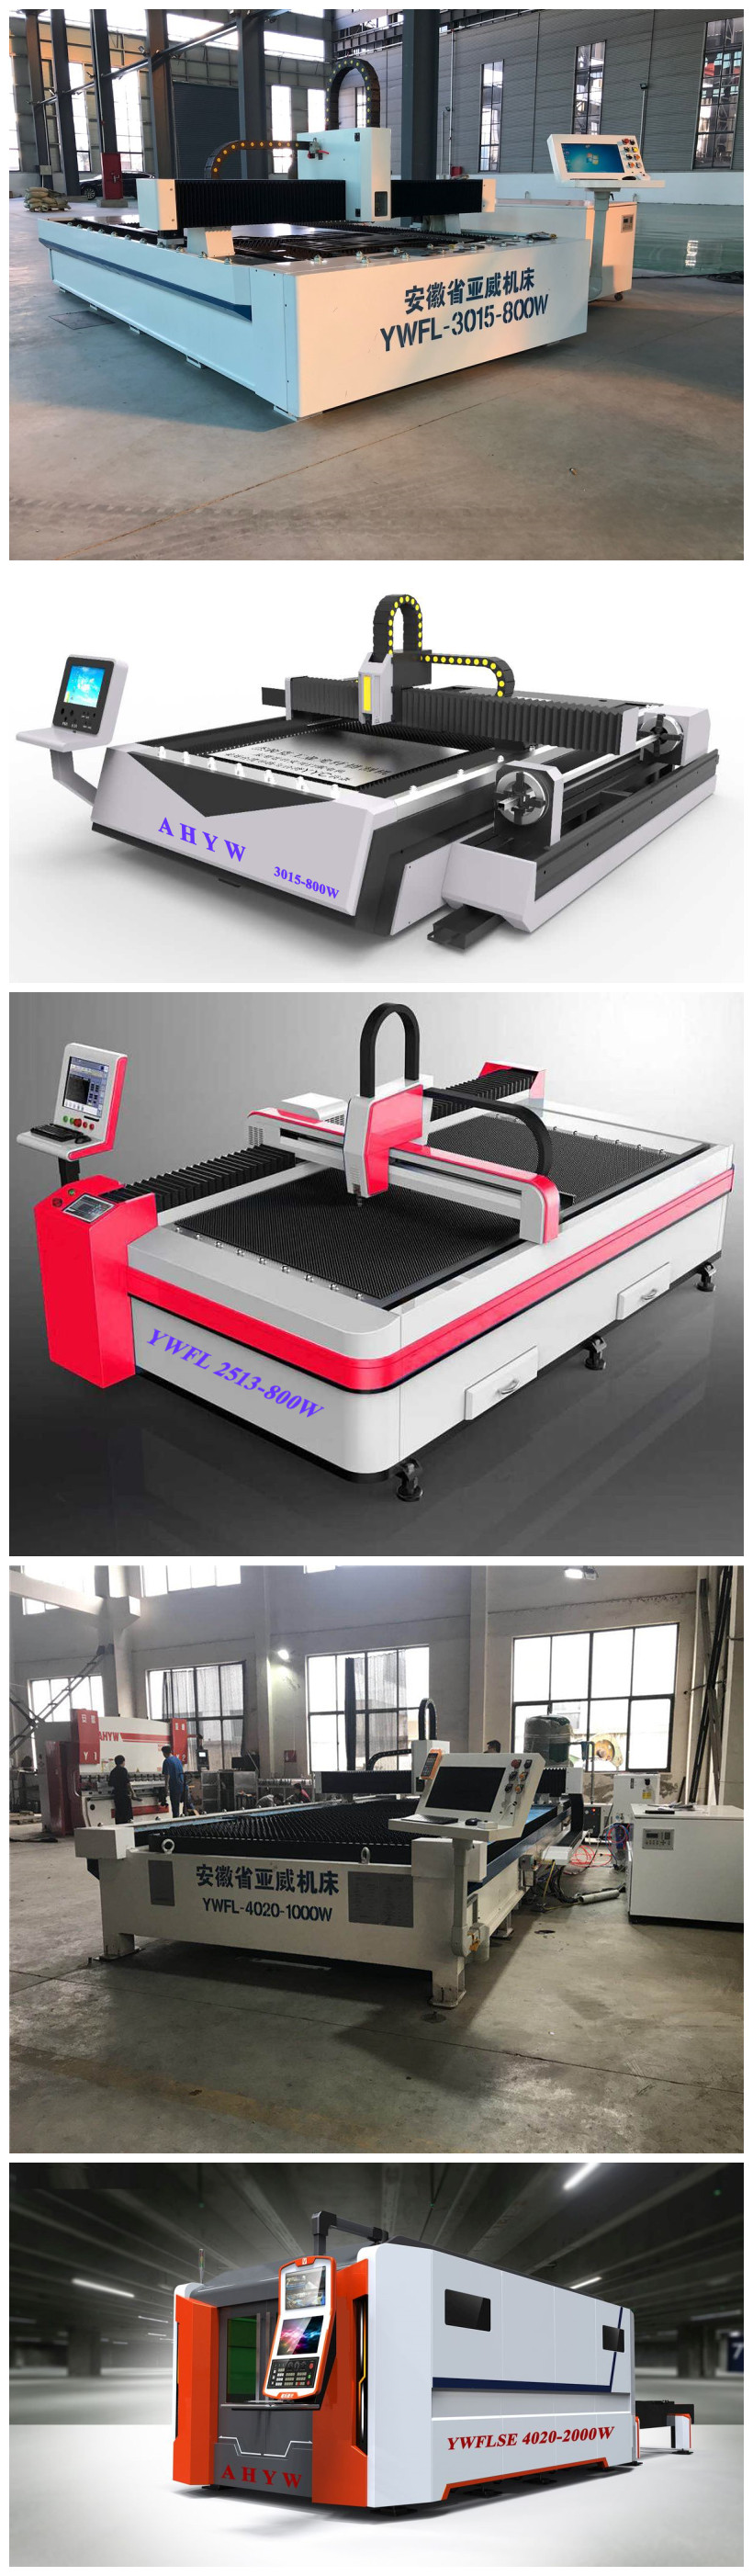 Fiber laser cutting machine with IPG Laser source for metal sheet cutting